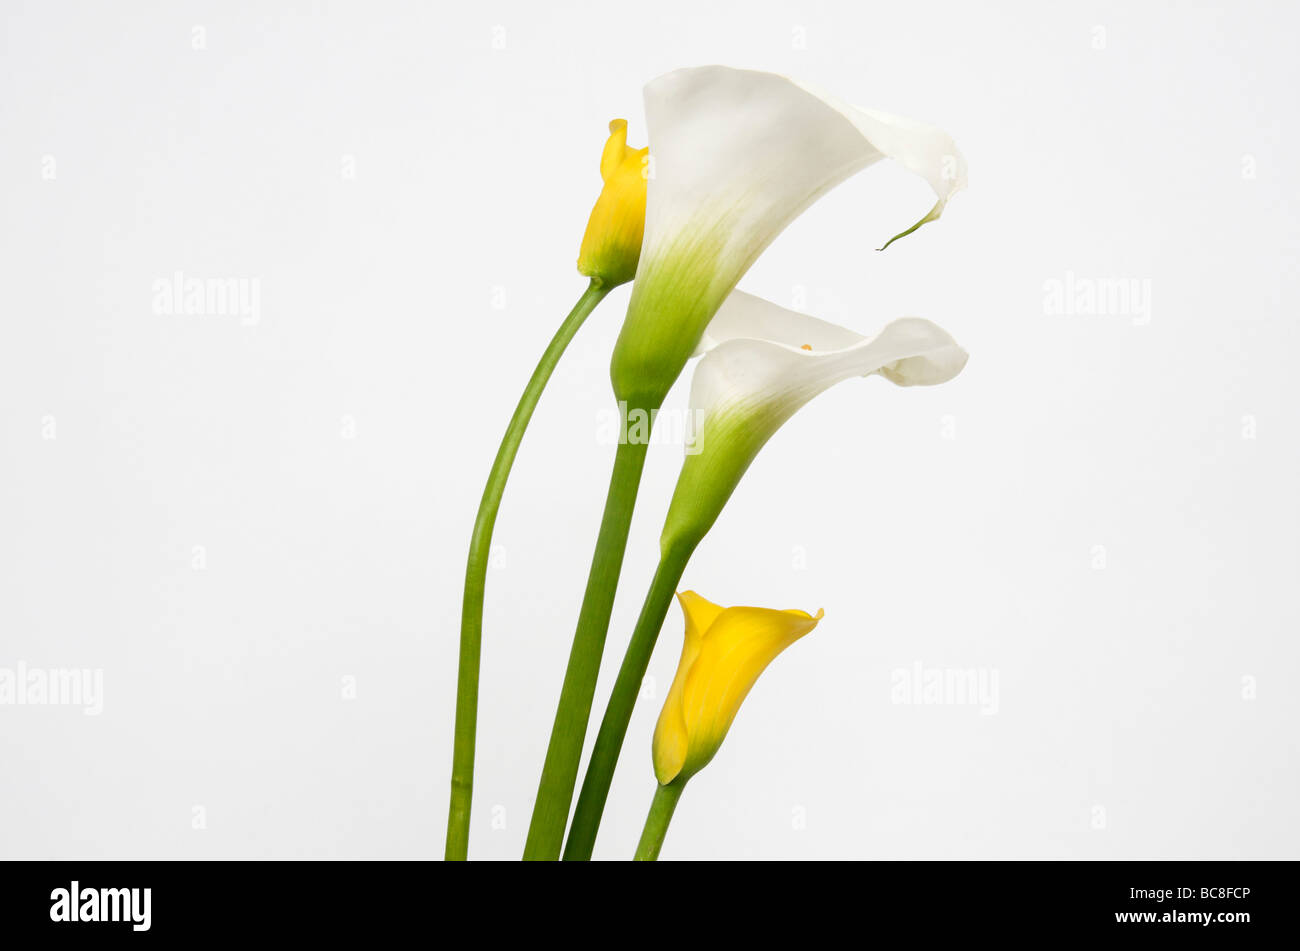 White arums in studio. Flowers. - Stock Image